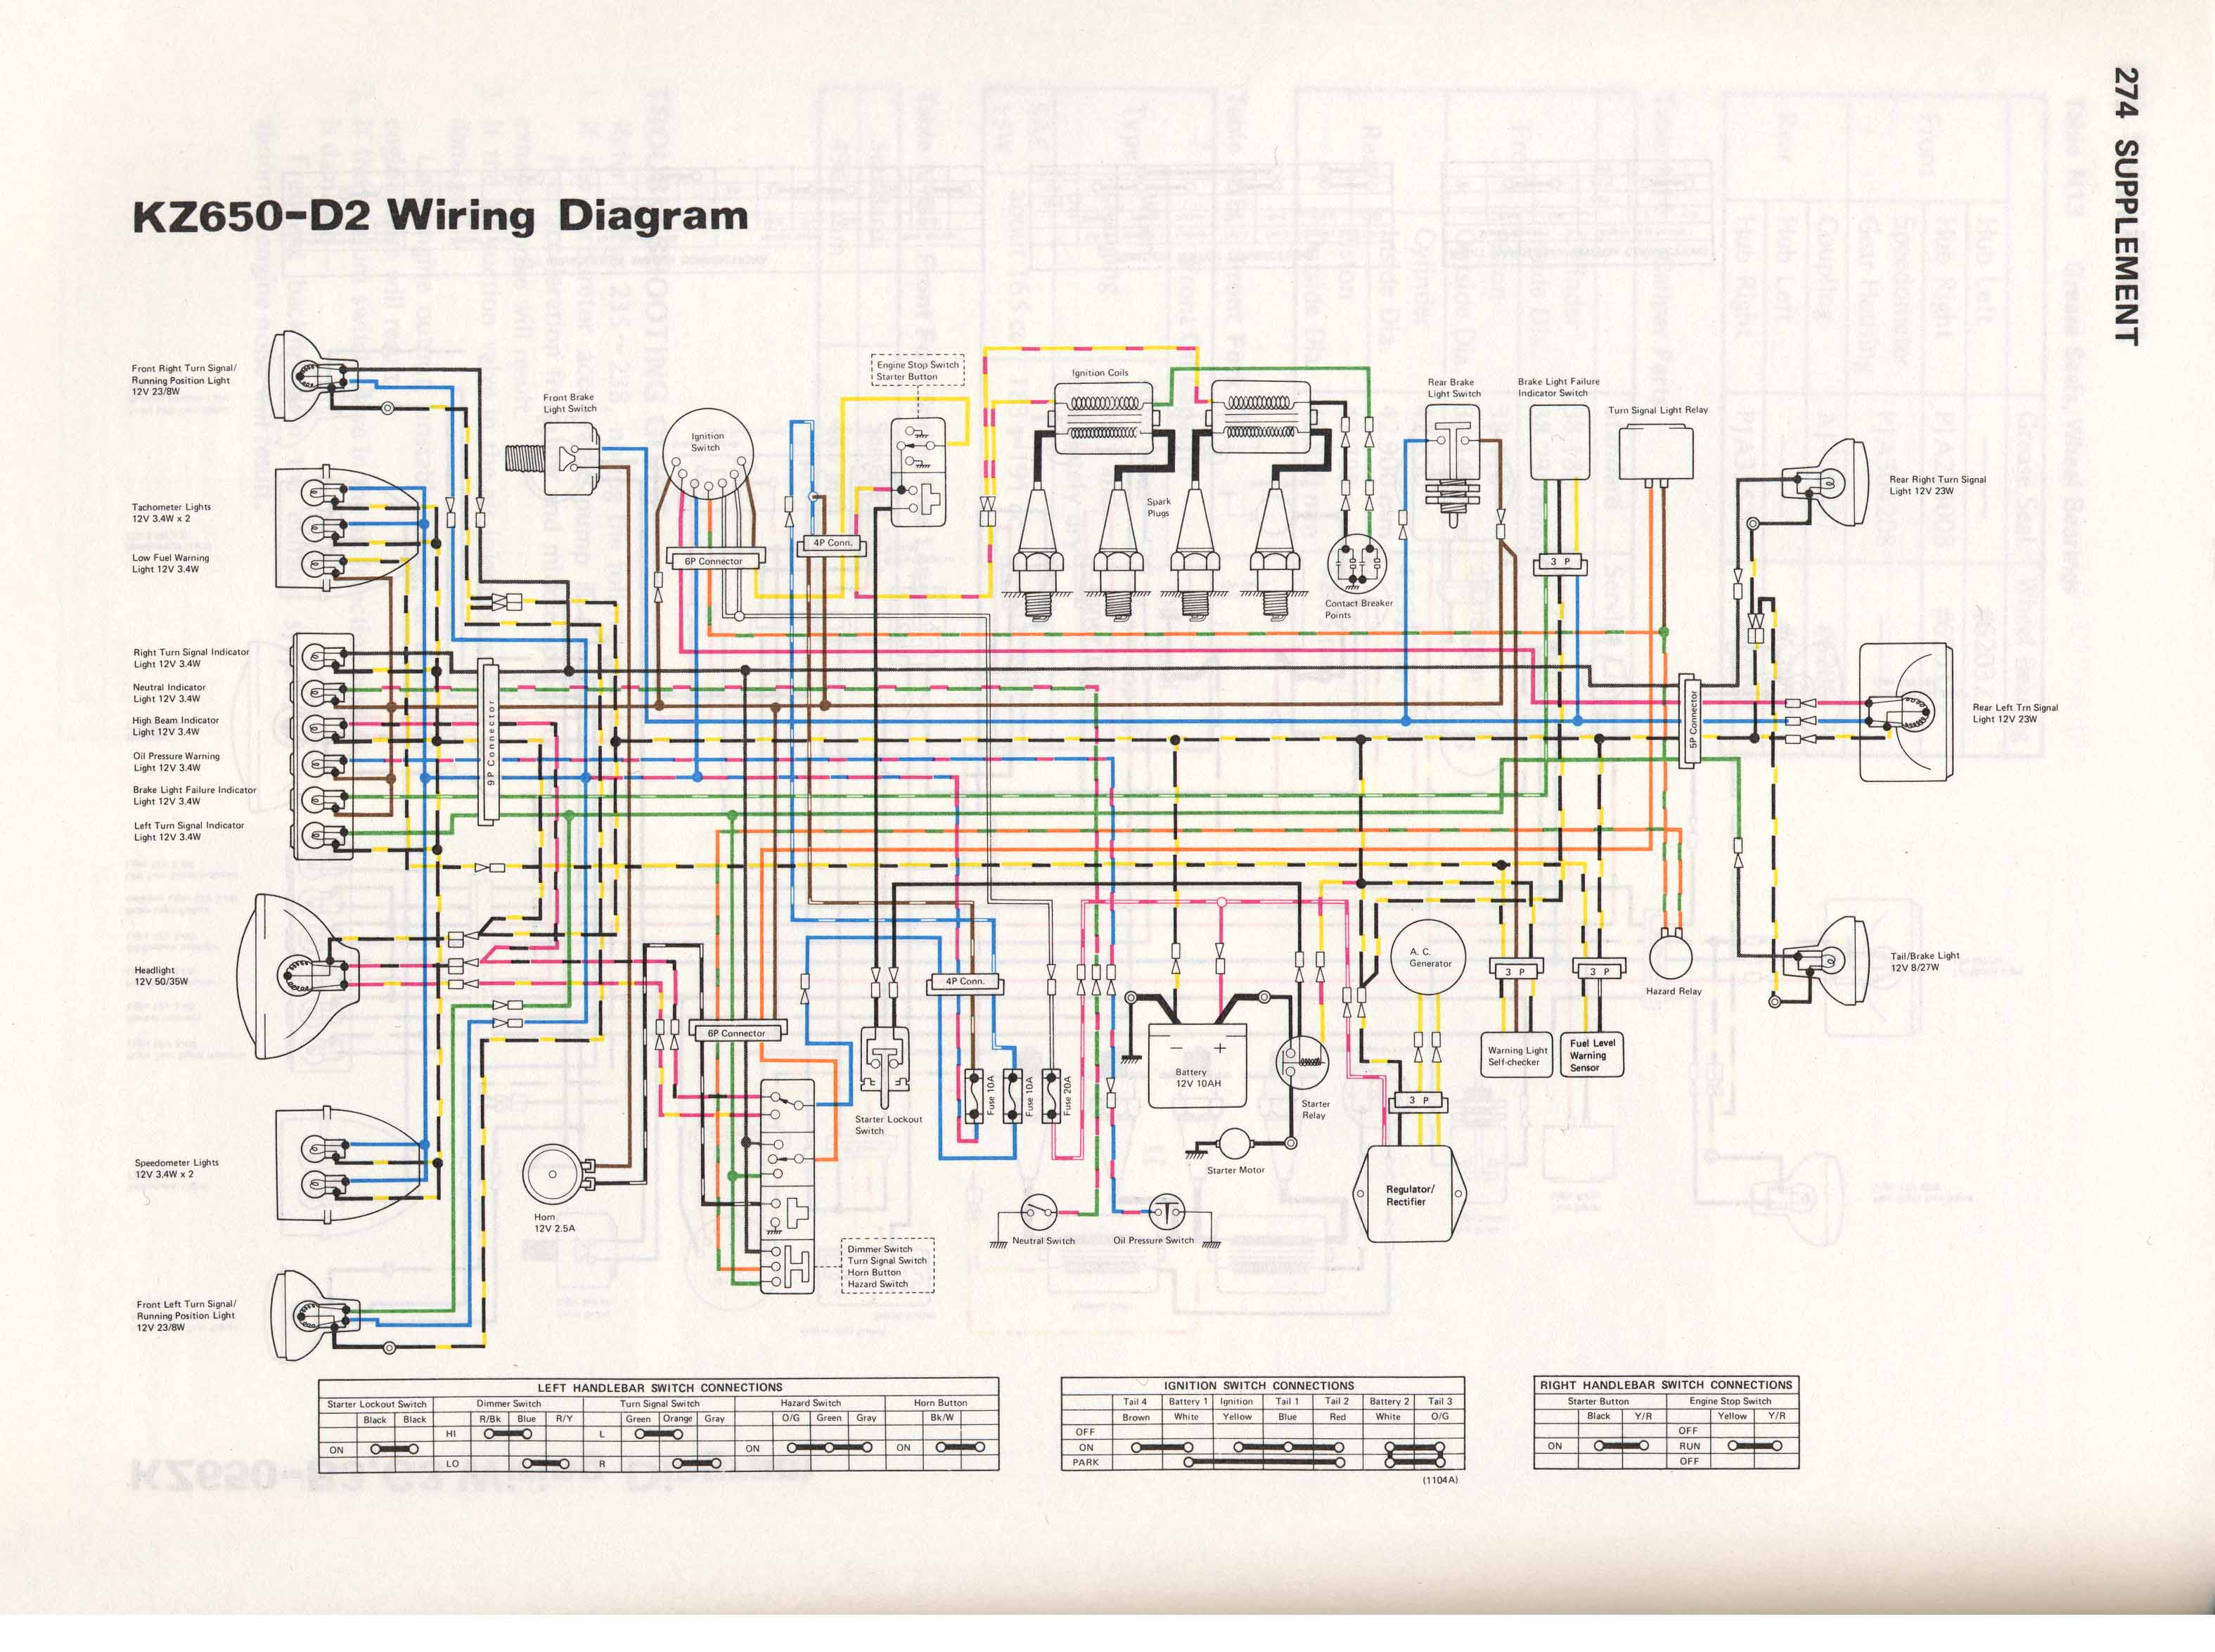 KZ650 D2 kz650 info wiring diagrams 77 Corvette Wiring Diagram at bakdesigns.co